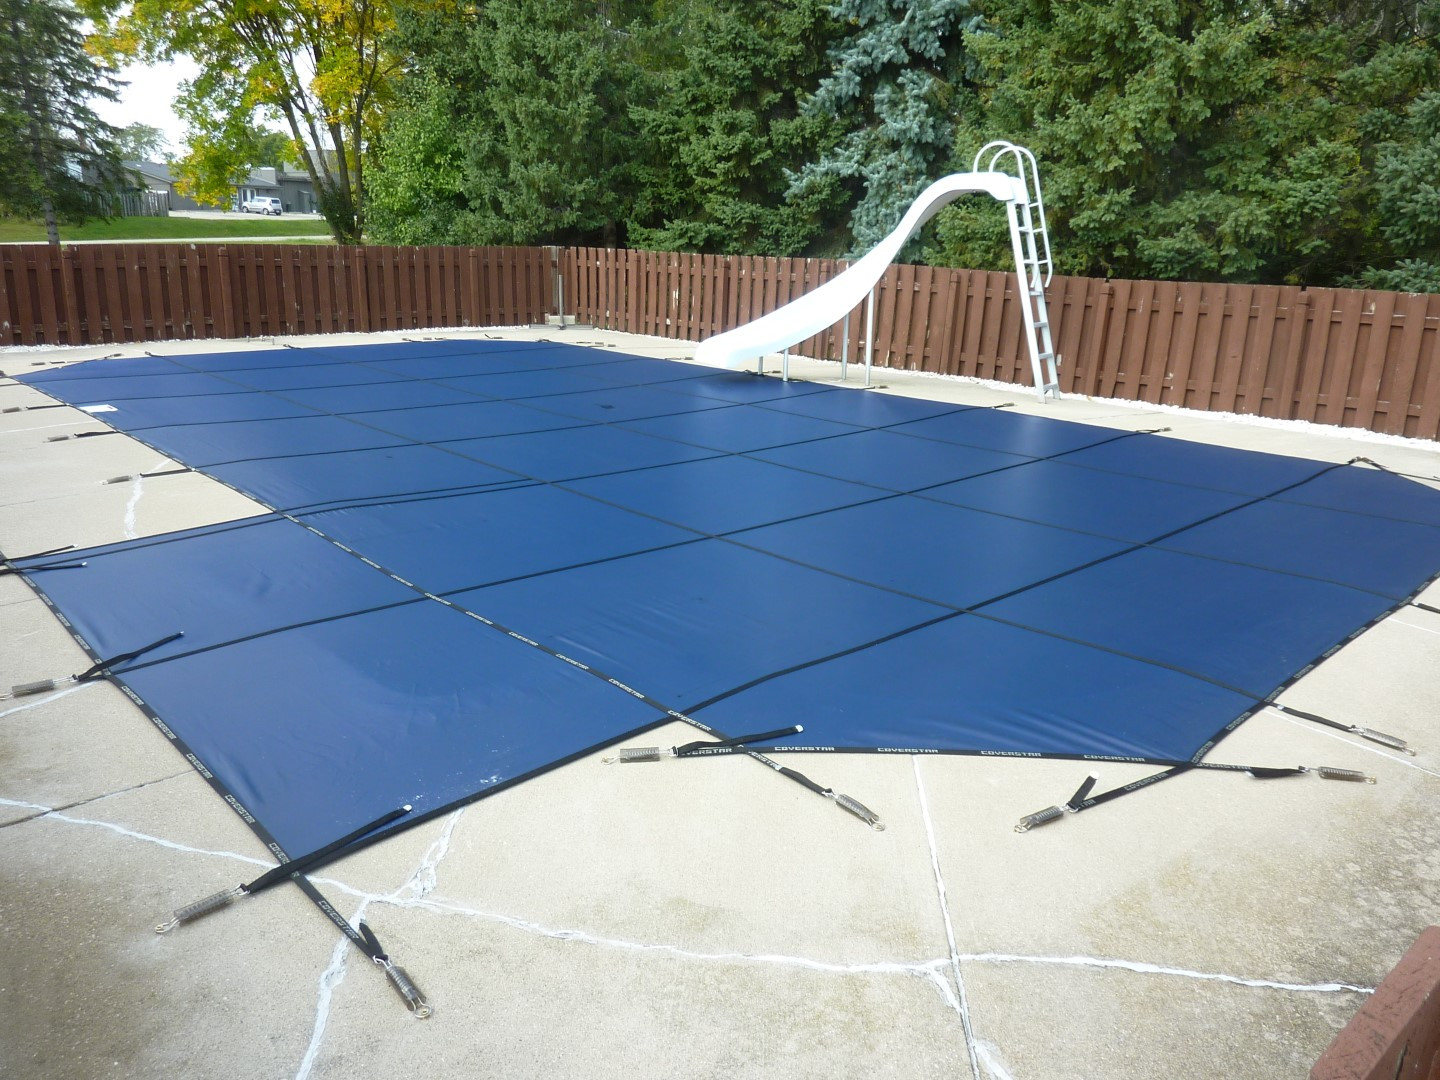 Best ideas about Inground Pool Cover . Save or Pin Pool Safety Covers Swimming Pool Covers Now.